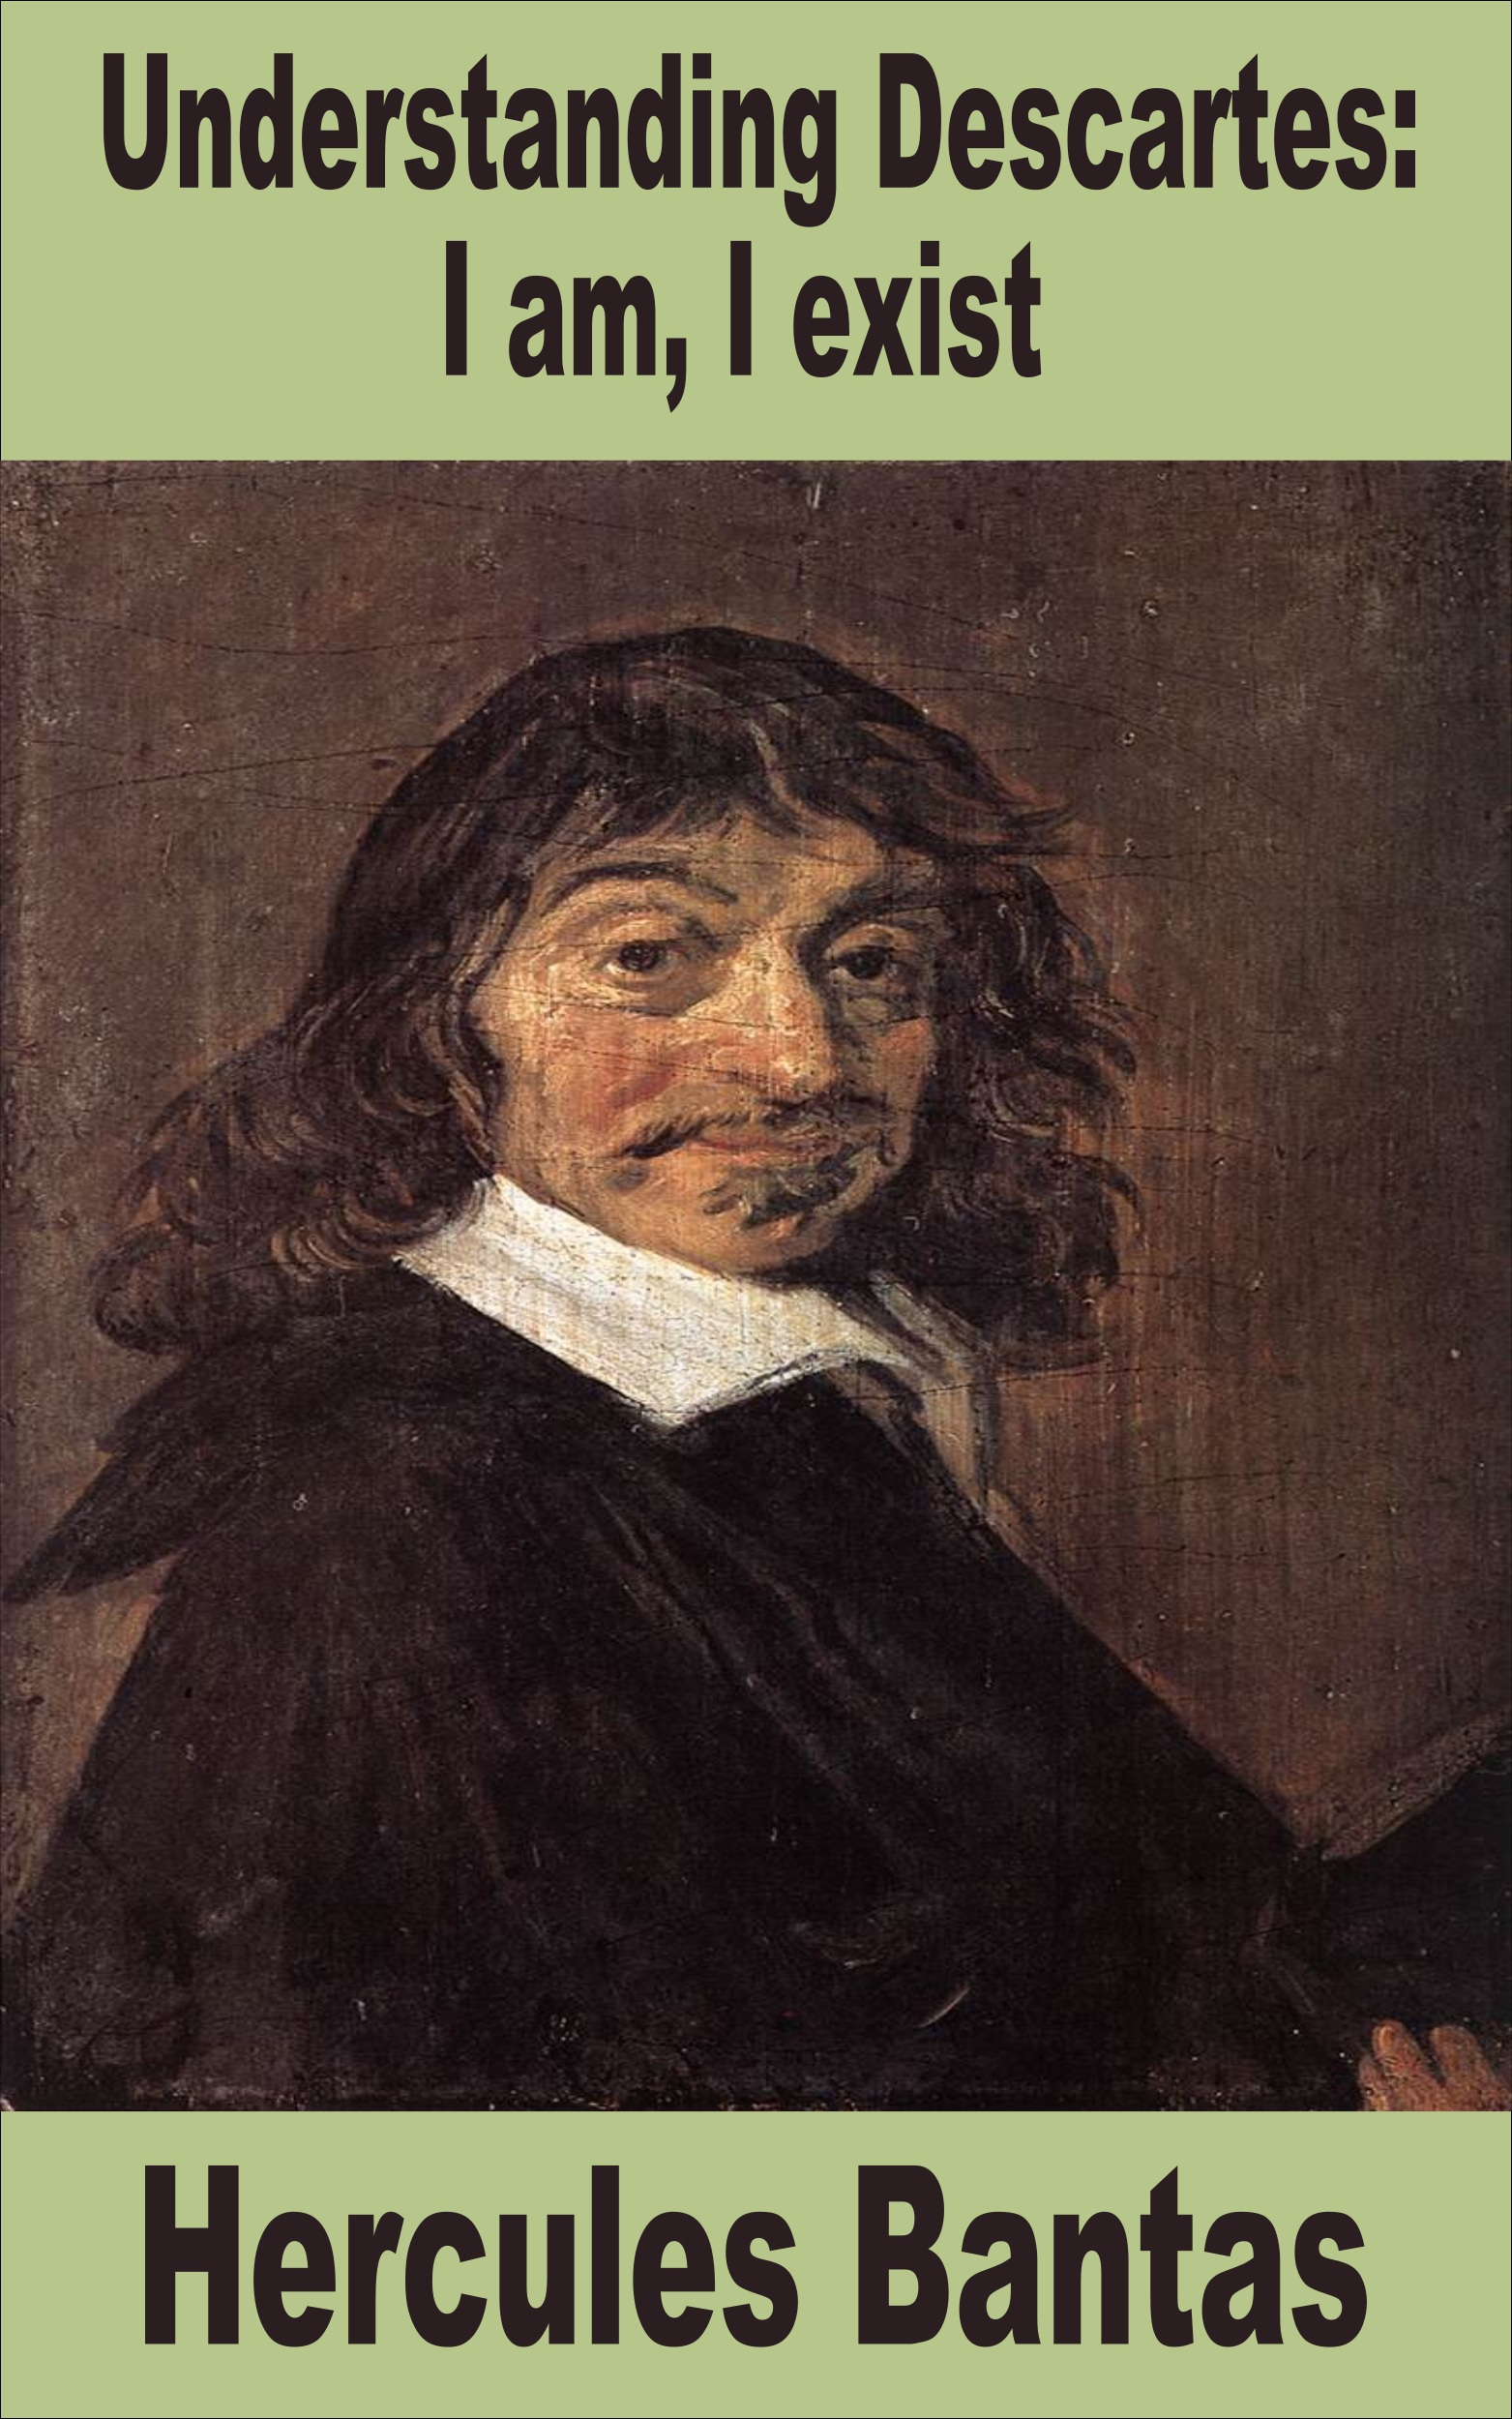 an analysis of descartes meditations based on the epistemological theory of rationalism